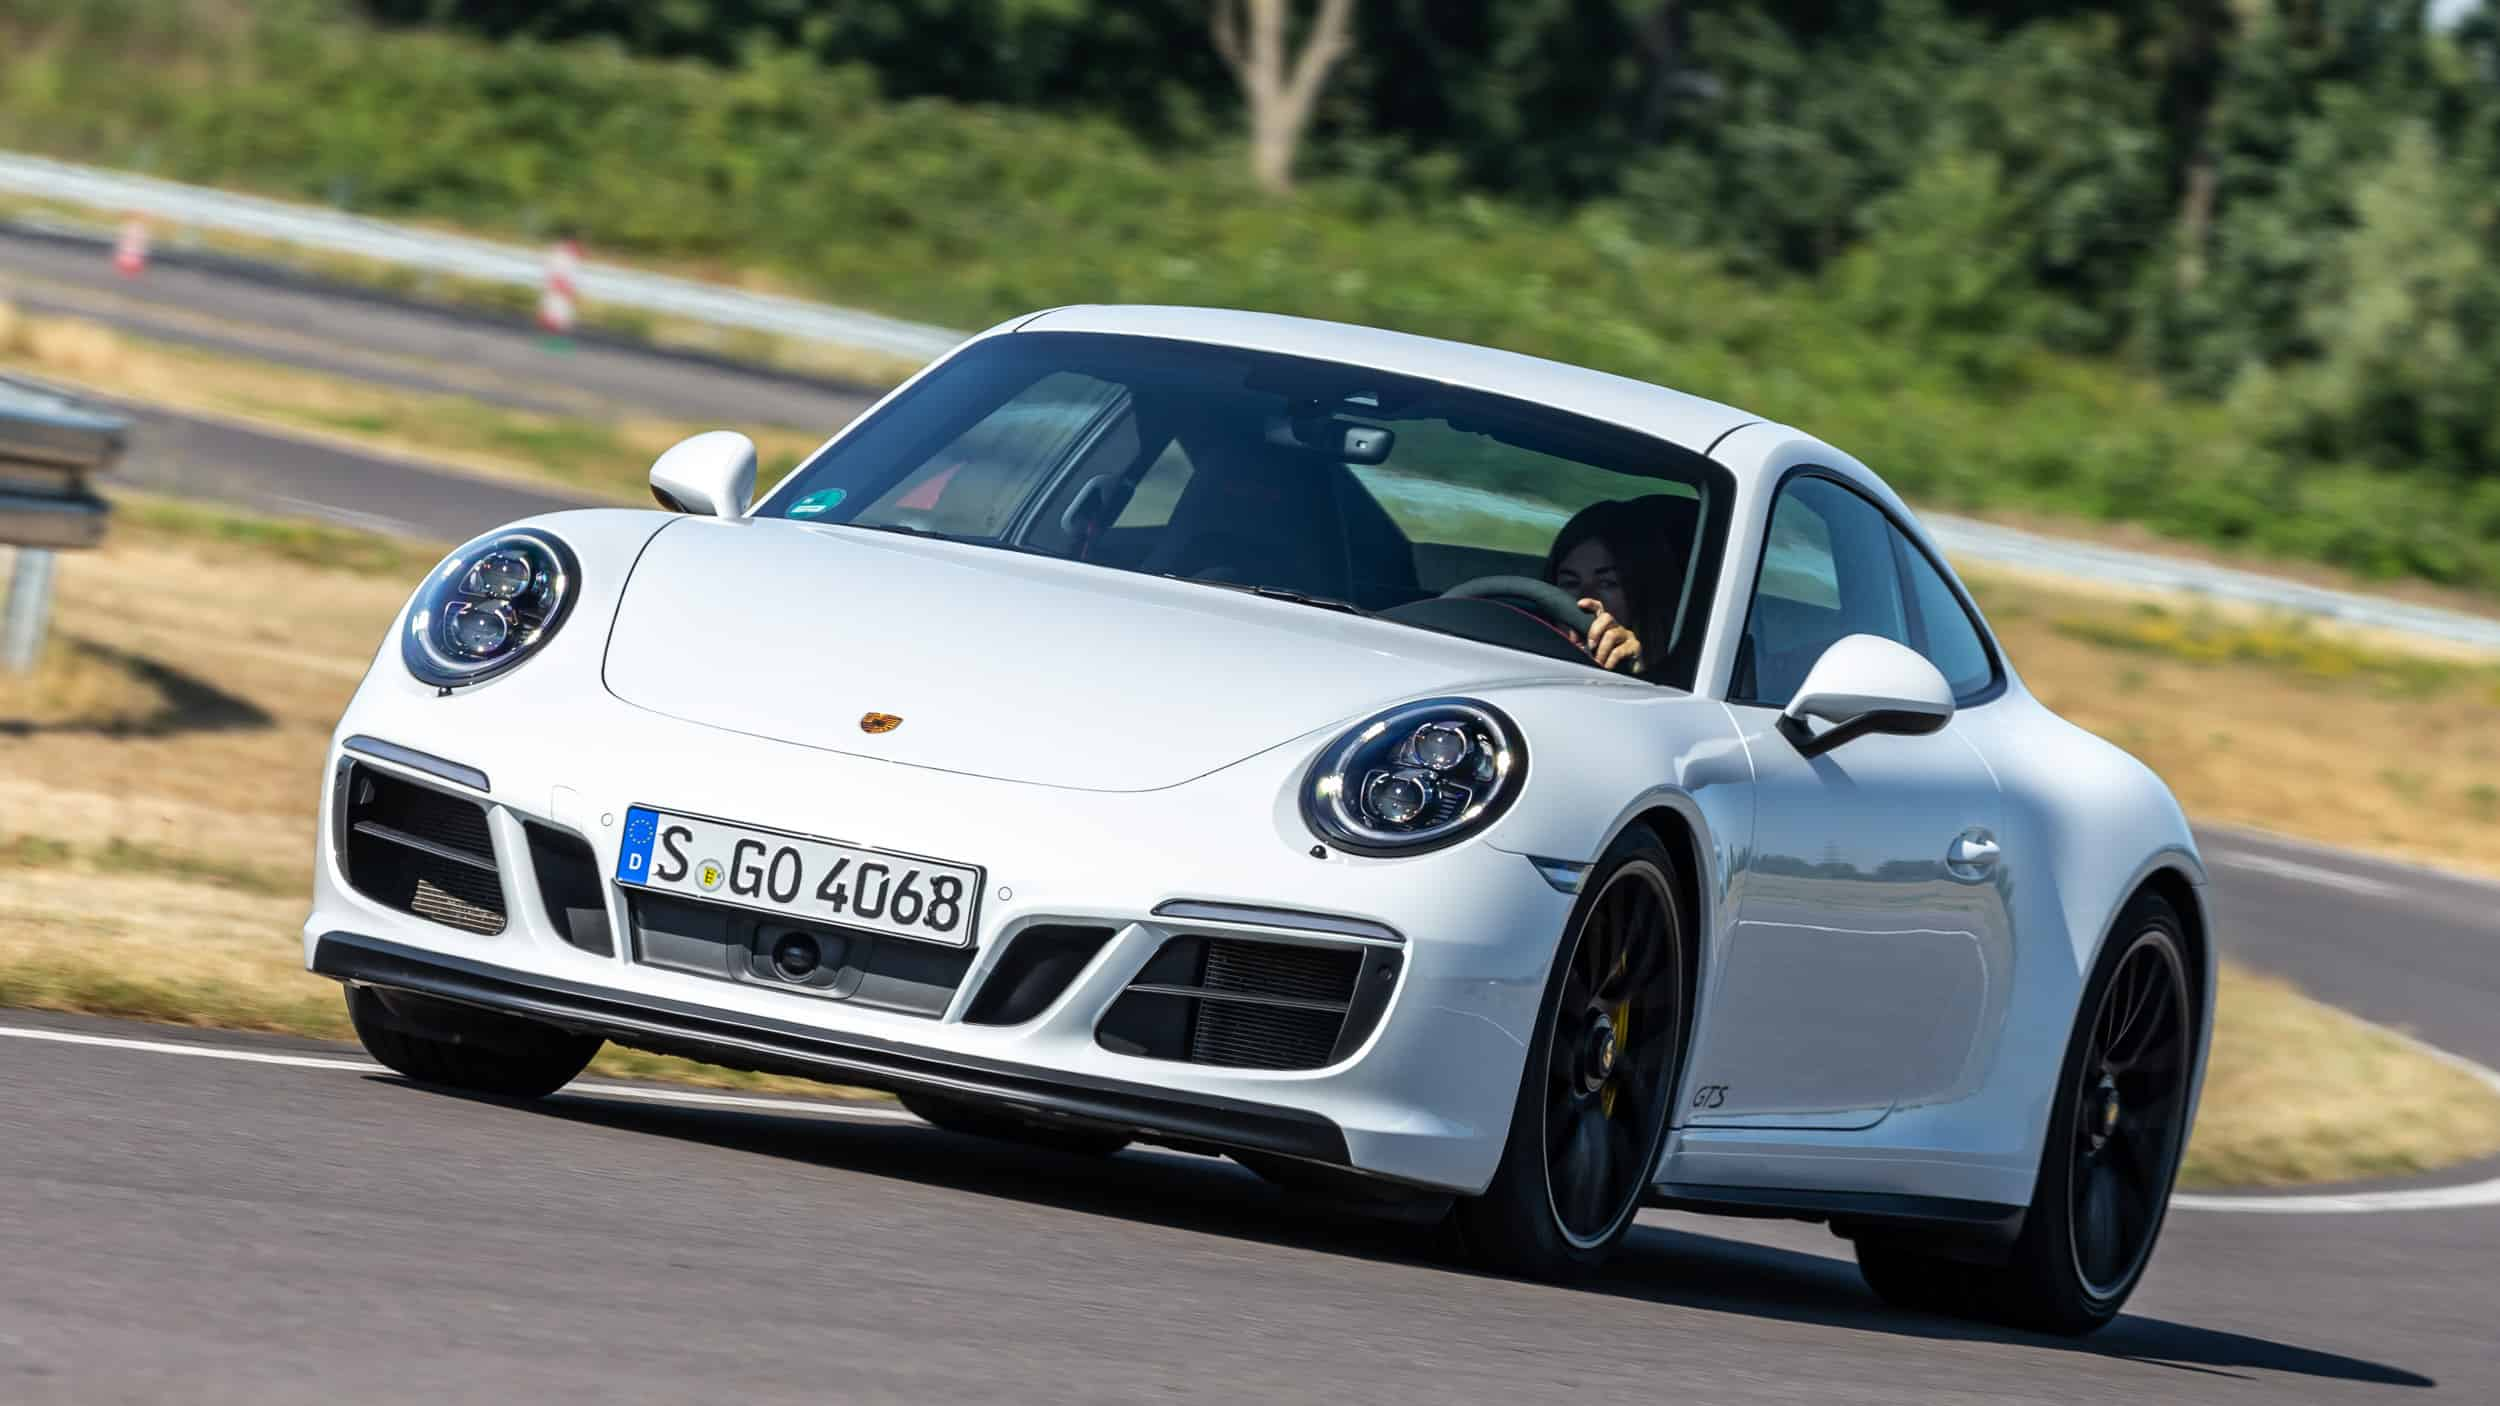 Porsche 911: one problem for every two Porsches in the first 90 days.